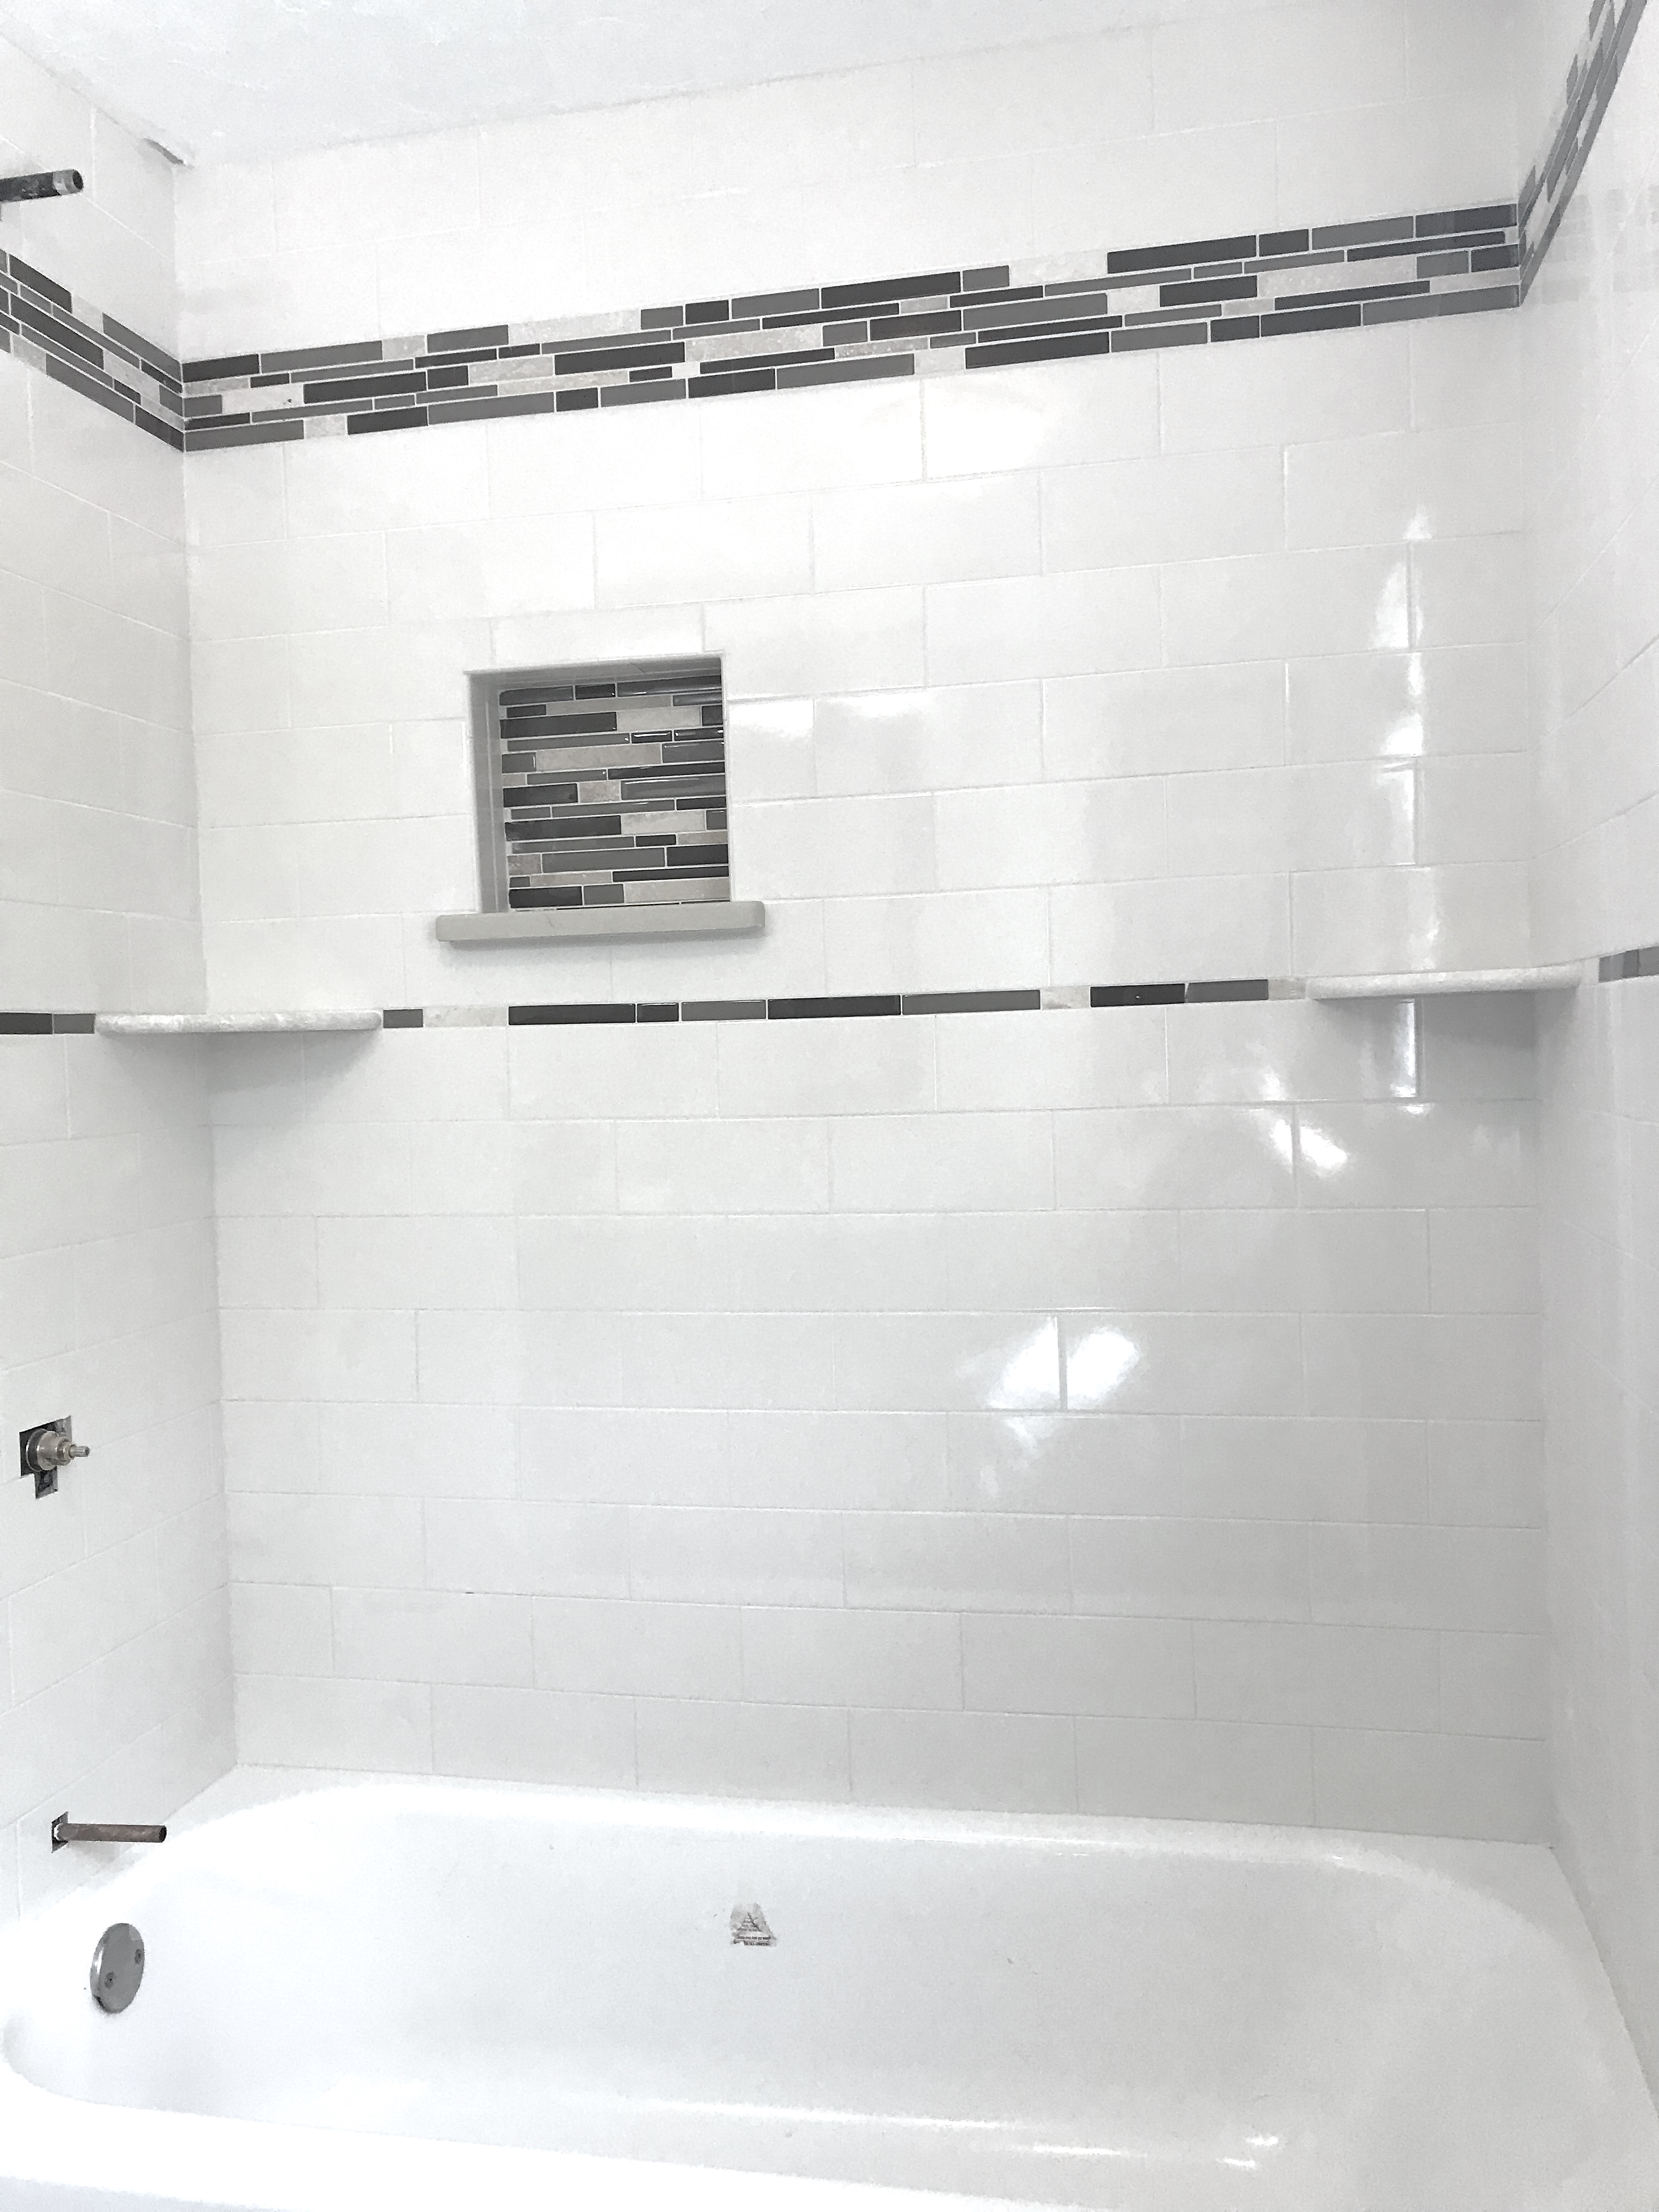 Home | Bathrooms by Design - Bathroom Renovation, Remodeling in MA & RI